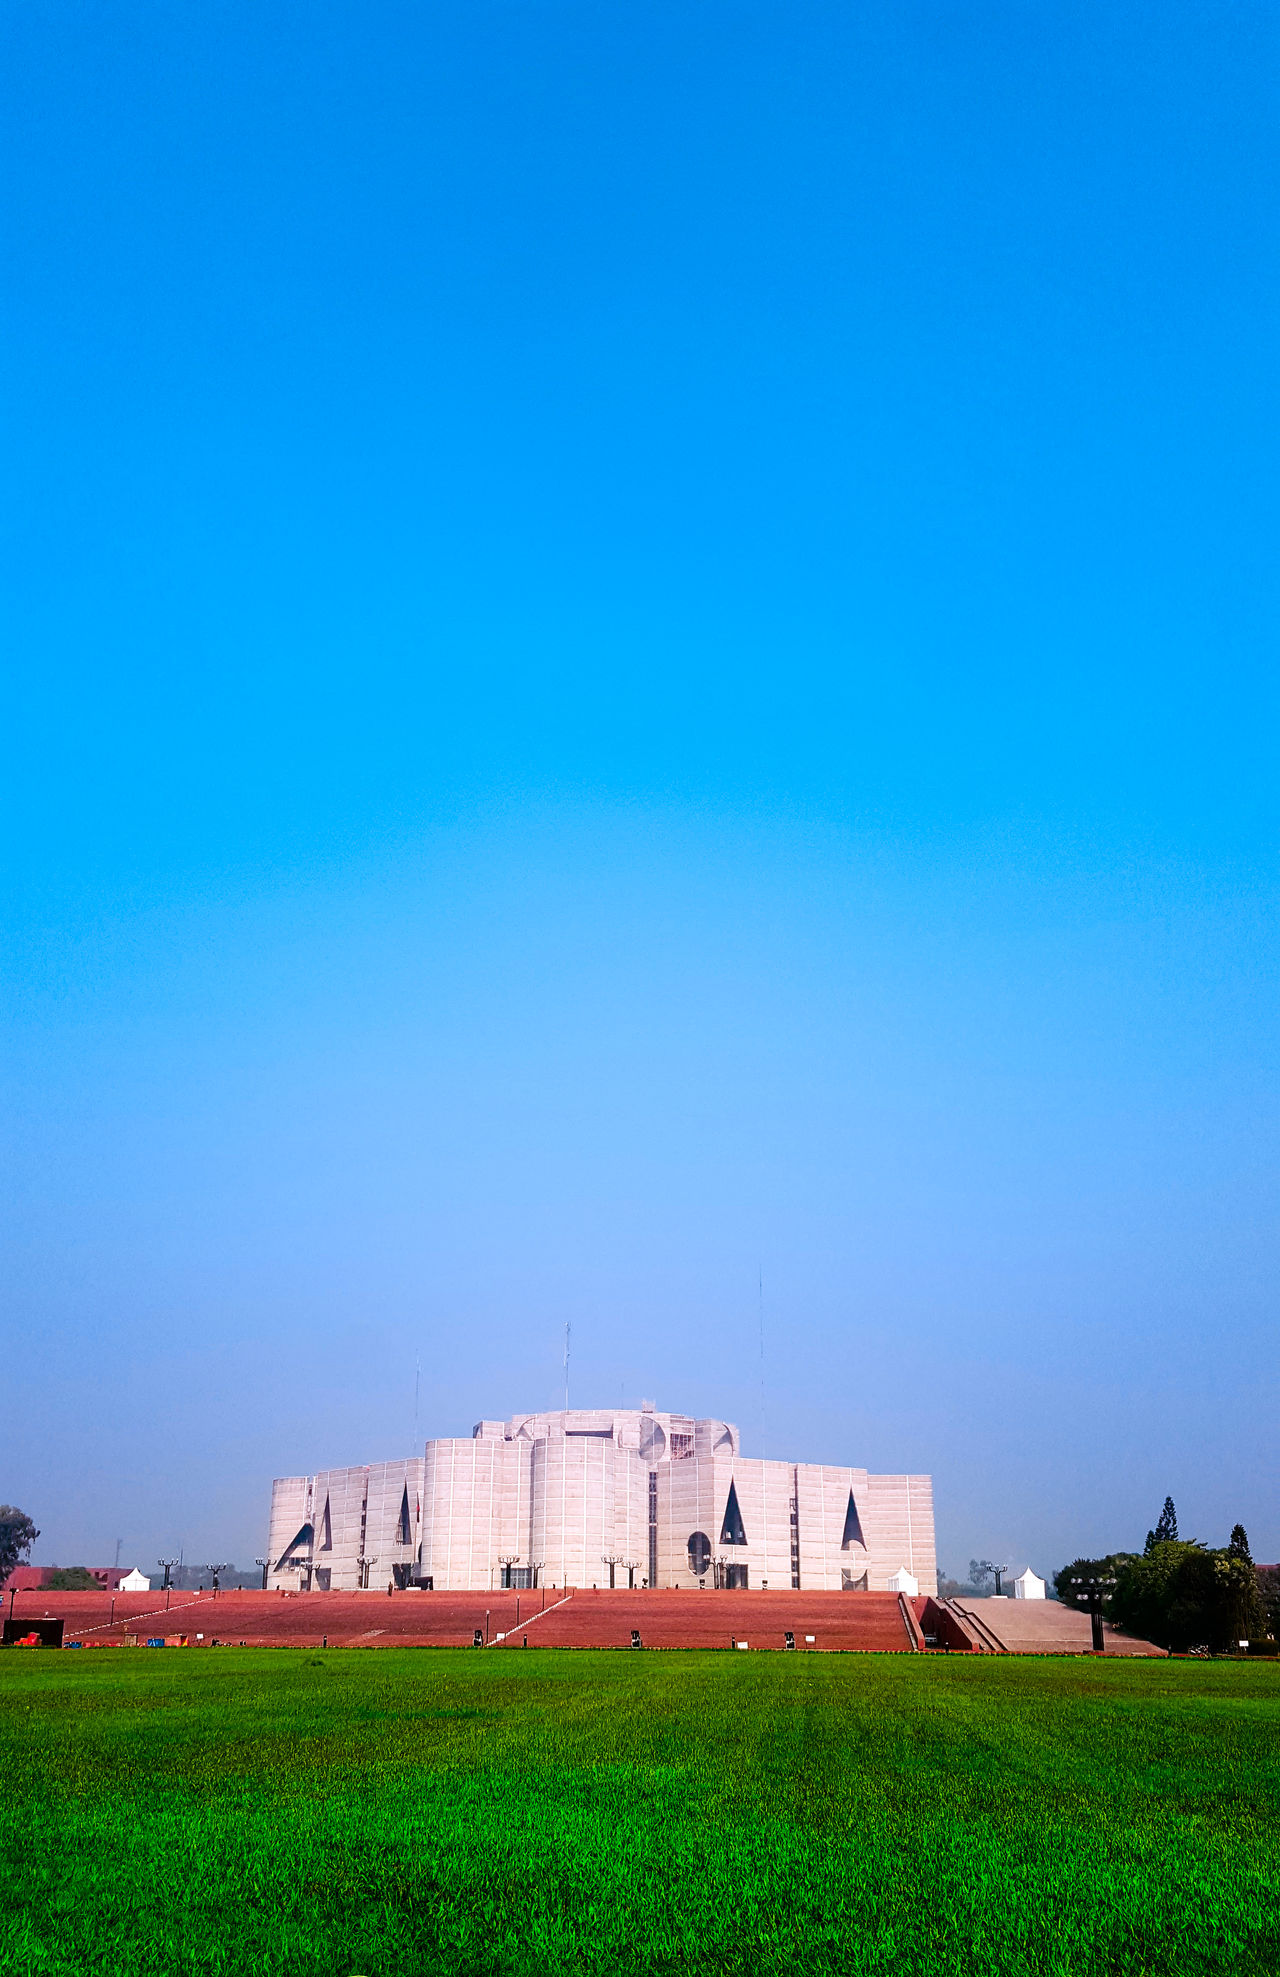 National Parliament House of Bangladesh by #architect #LouisKahn Built Structure Architecture Building Exterior Sky Clear Sky Grass Outdoors Landscape Cityscape No People Day Nature Skyline National Assembly Of Bangladesh EyeEmPaid EyeEmArt EyeEm Gallery EyeEmNewHere EyeEm Nature Lover Break The Mold EyeEmDiversity Eye4photography  Portrait EyeEm Sunnyday☀️ EyeEmNewHere Break The Mold The Great Outdoors - 2017 EyeEm Awards